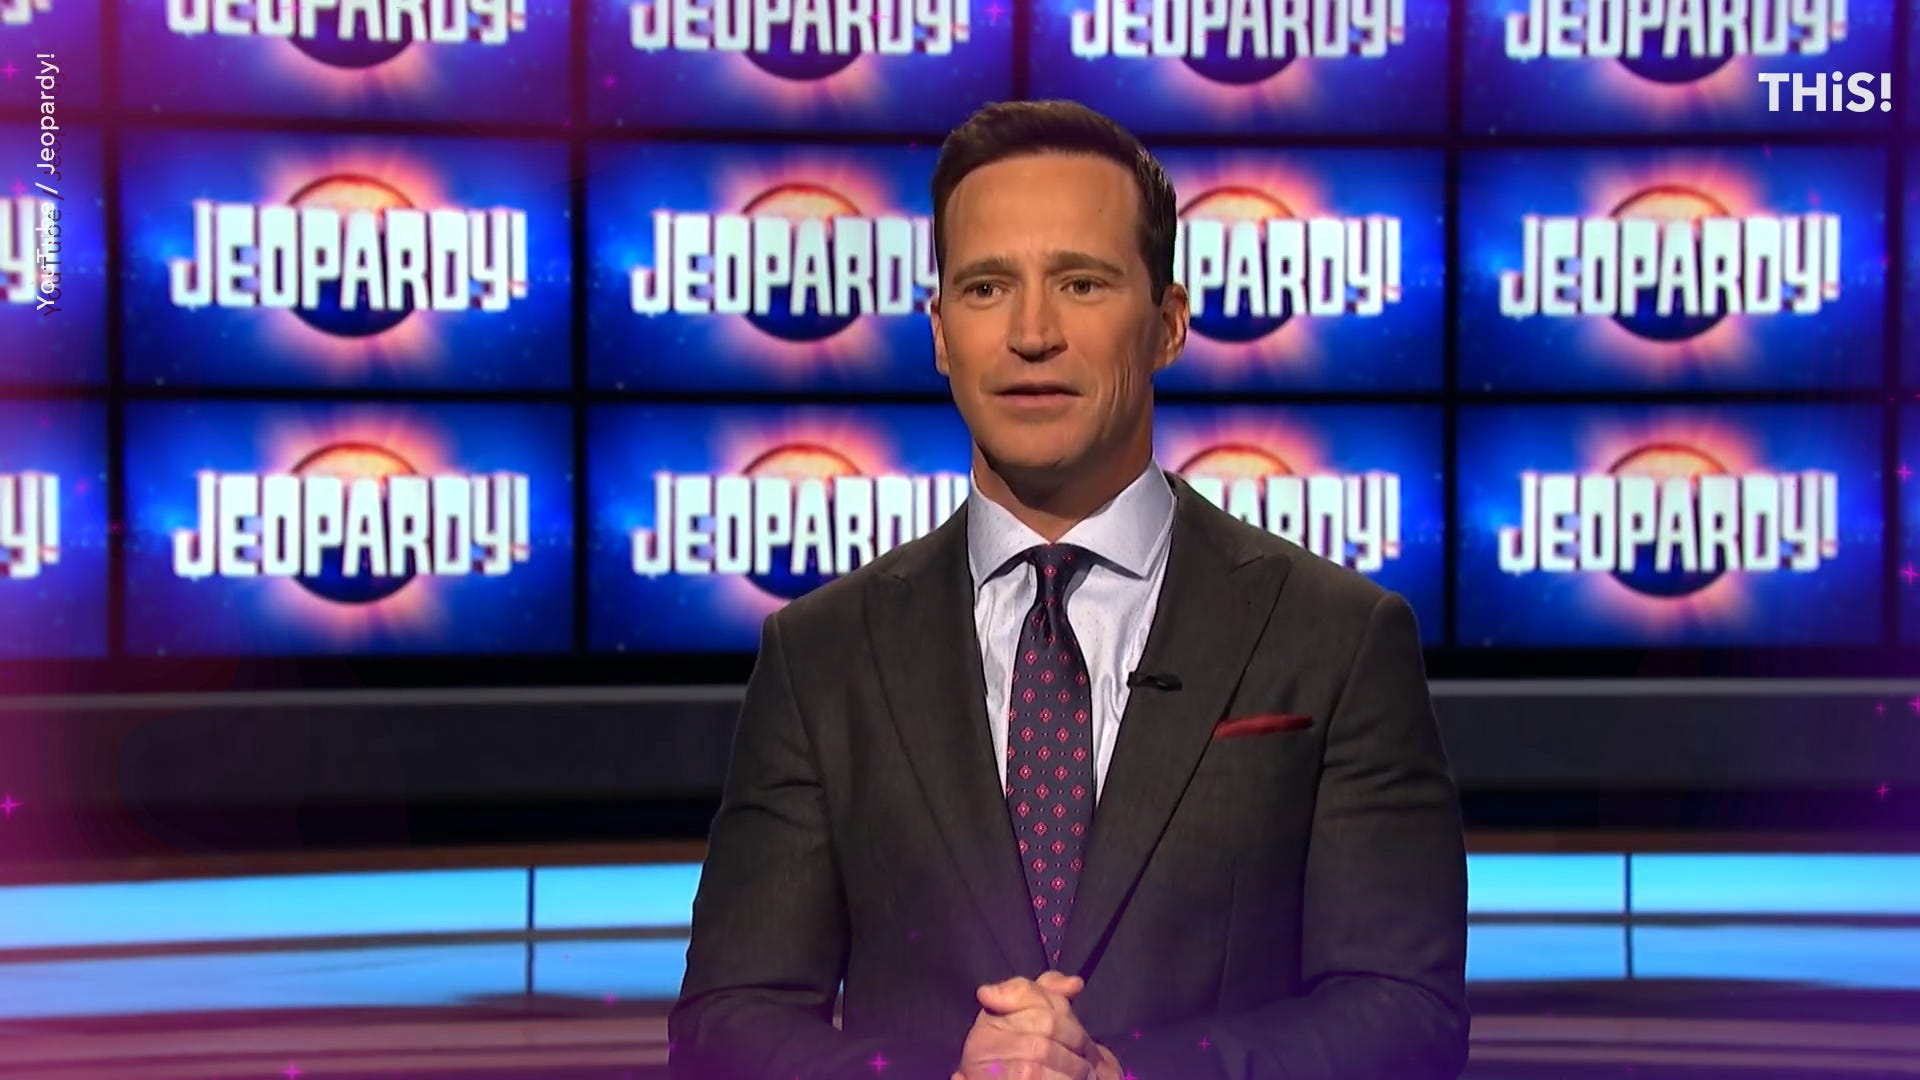 Everything you need to know about 'Jeopardy!' guest host Mike Richards, and what's next